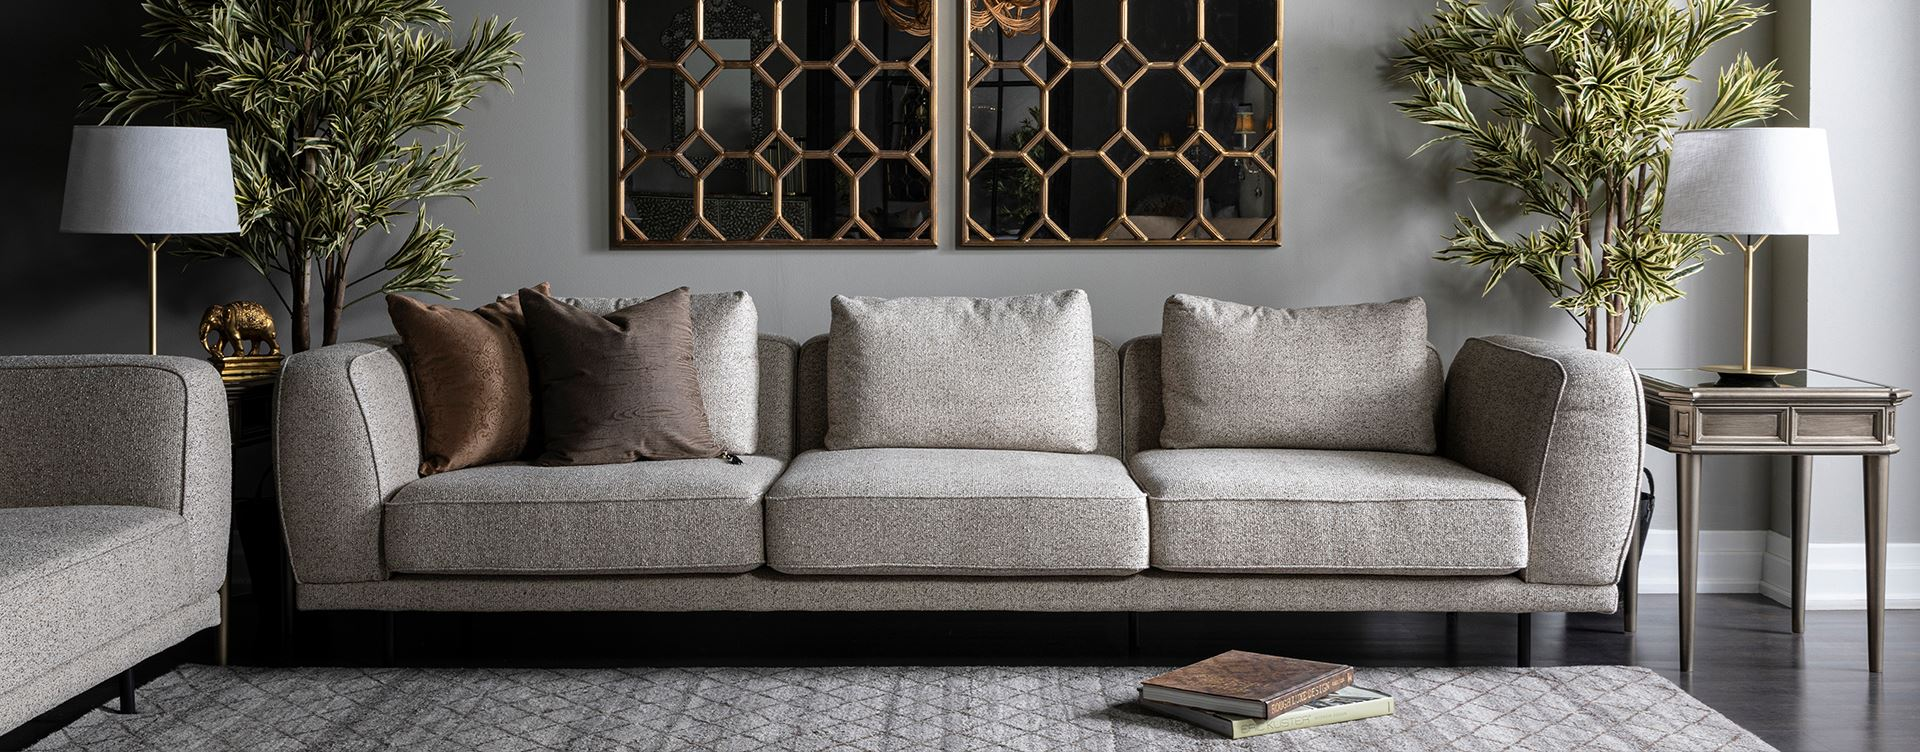 Buy Luxury Furniture at FUSION by - THE One UAE